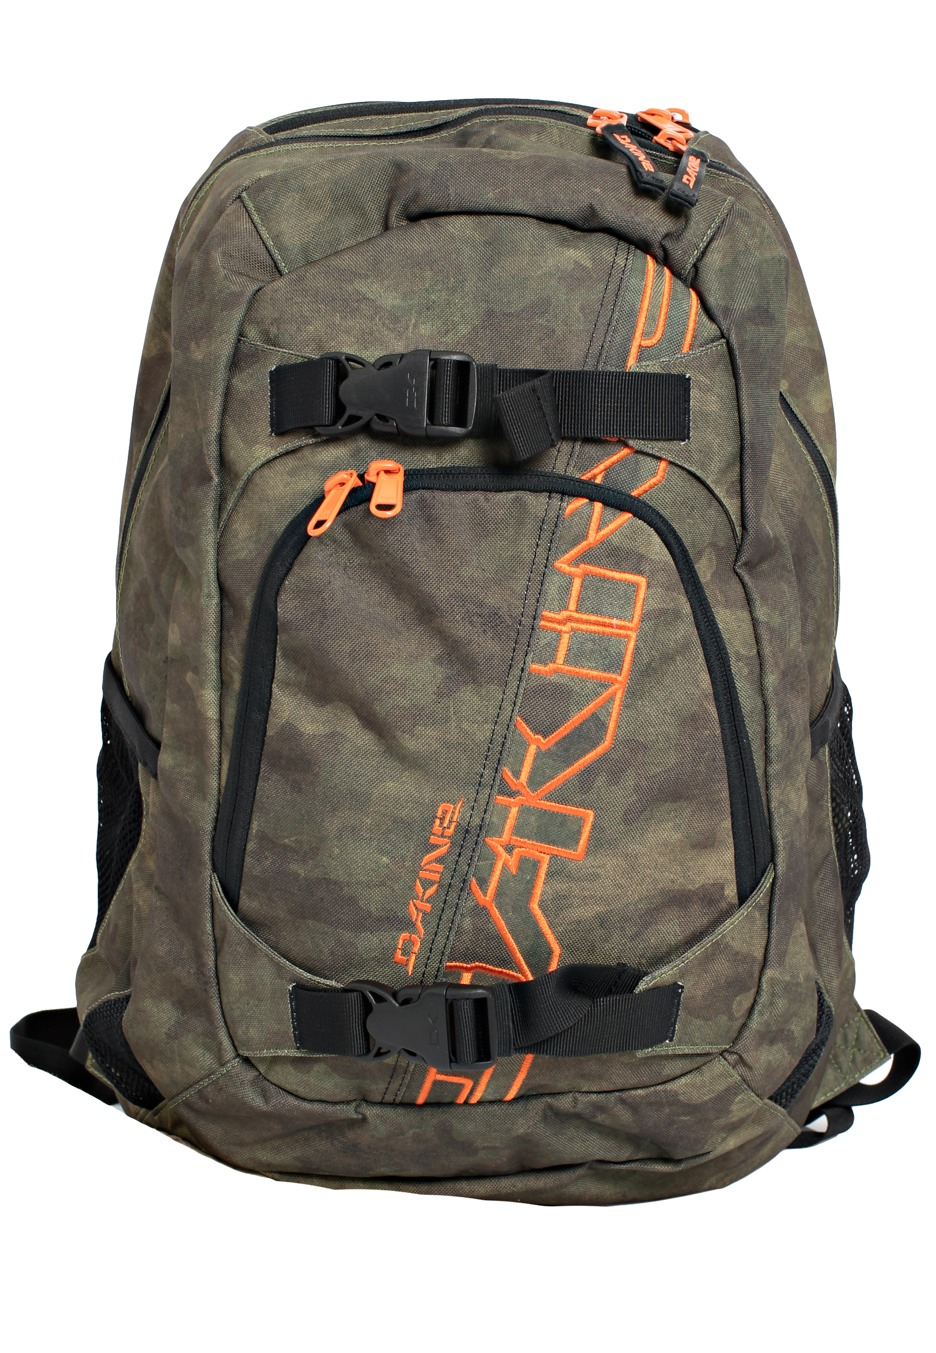 Dakine - Explorer Timber - Backpack - Impericon.com Worldwide